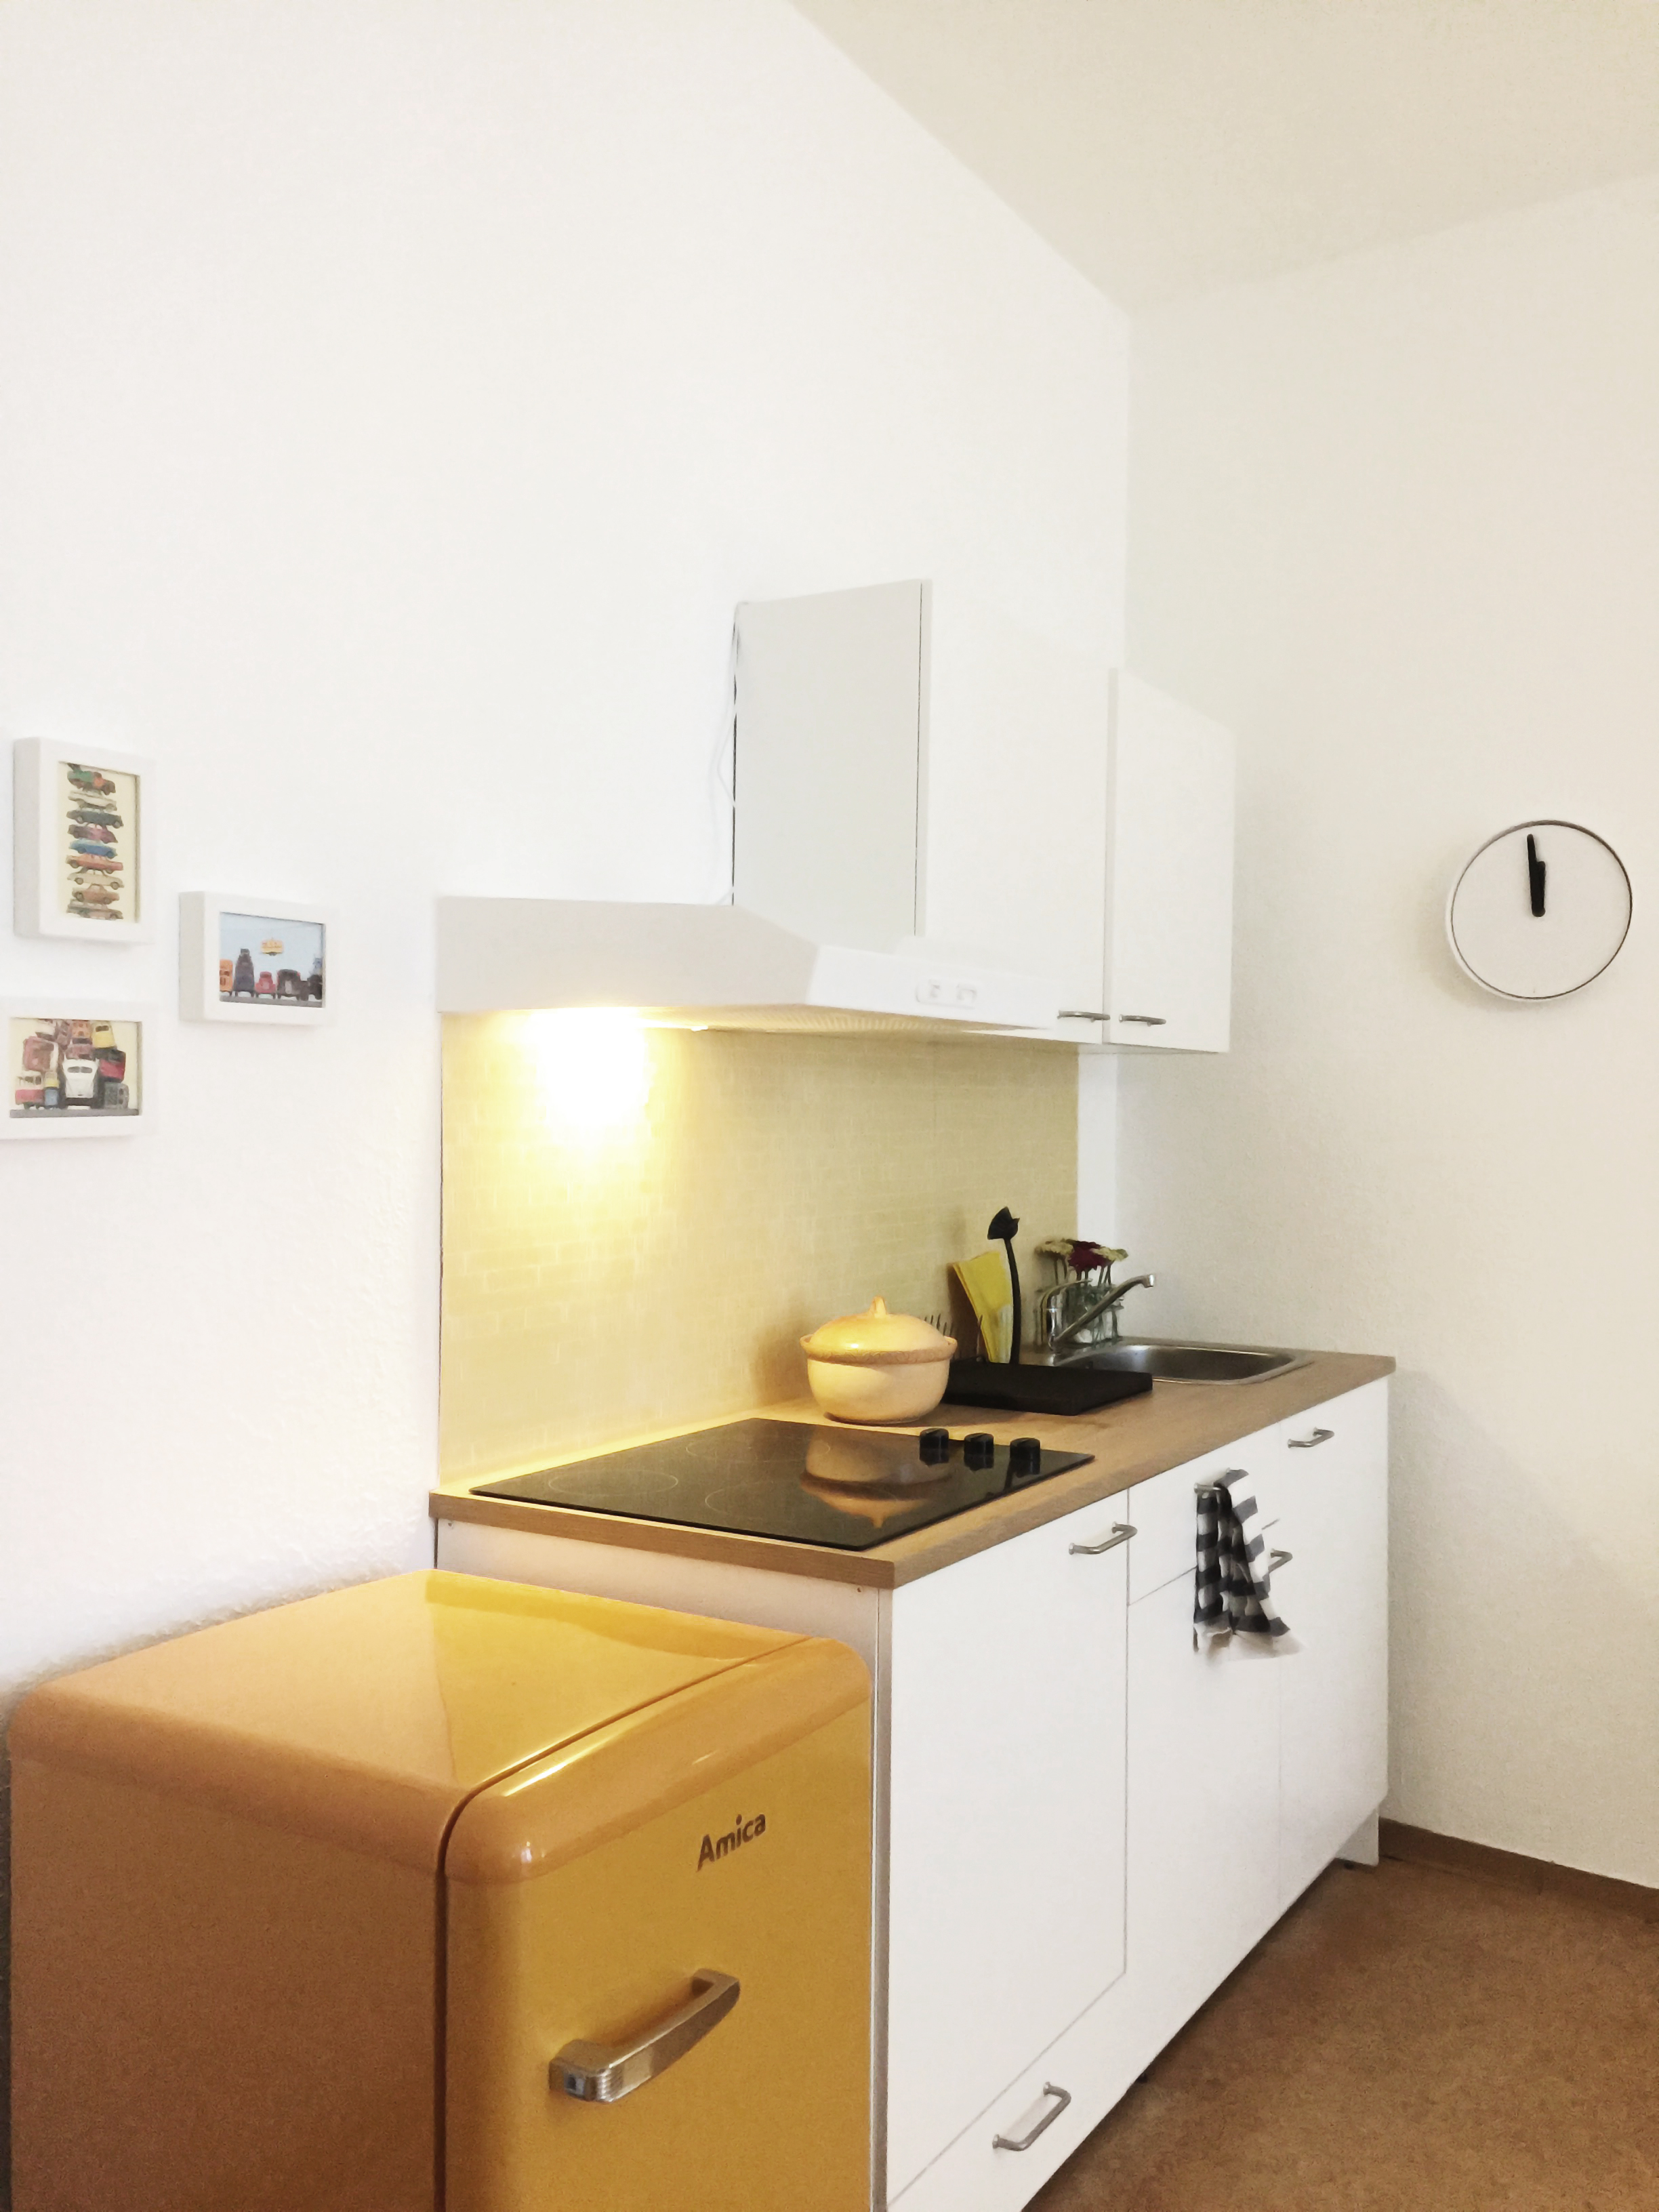 Römerburg Apartment 2